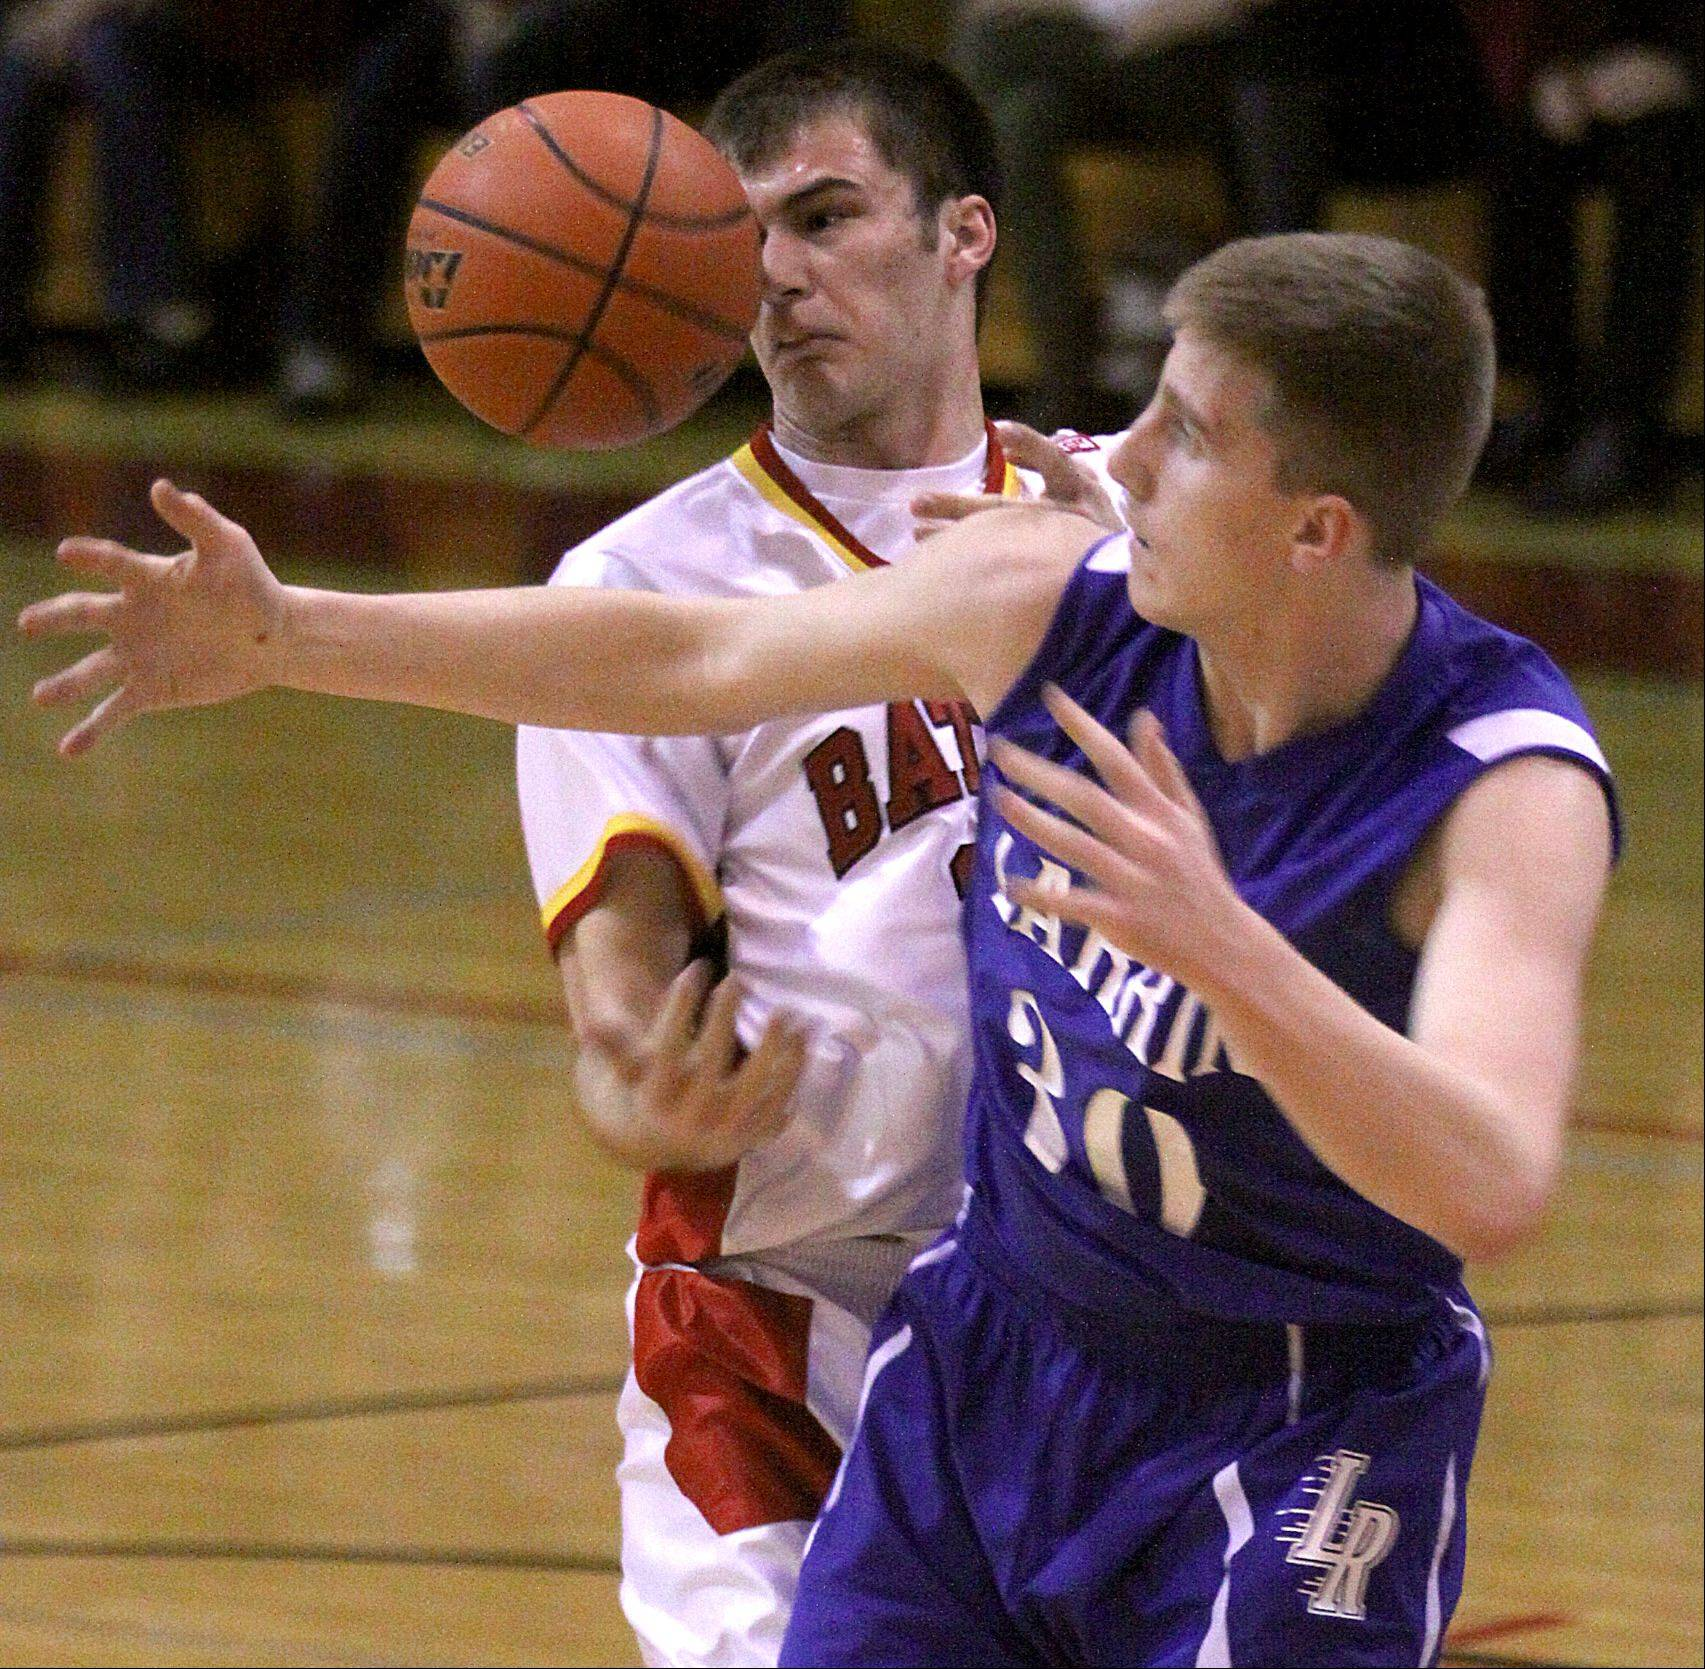 Batavia's Zach Strittmatter, left, and Larkin's Brayden Royse pursue a loose ball during a varsity basketball game at Batavia on Thursday night.